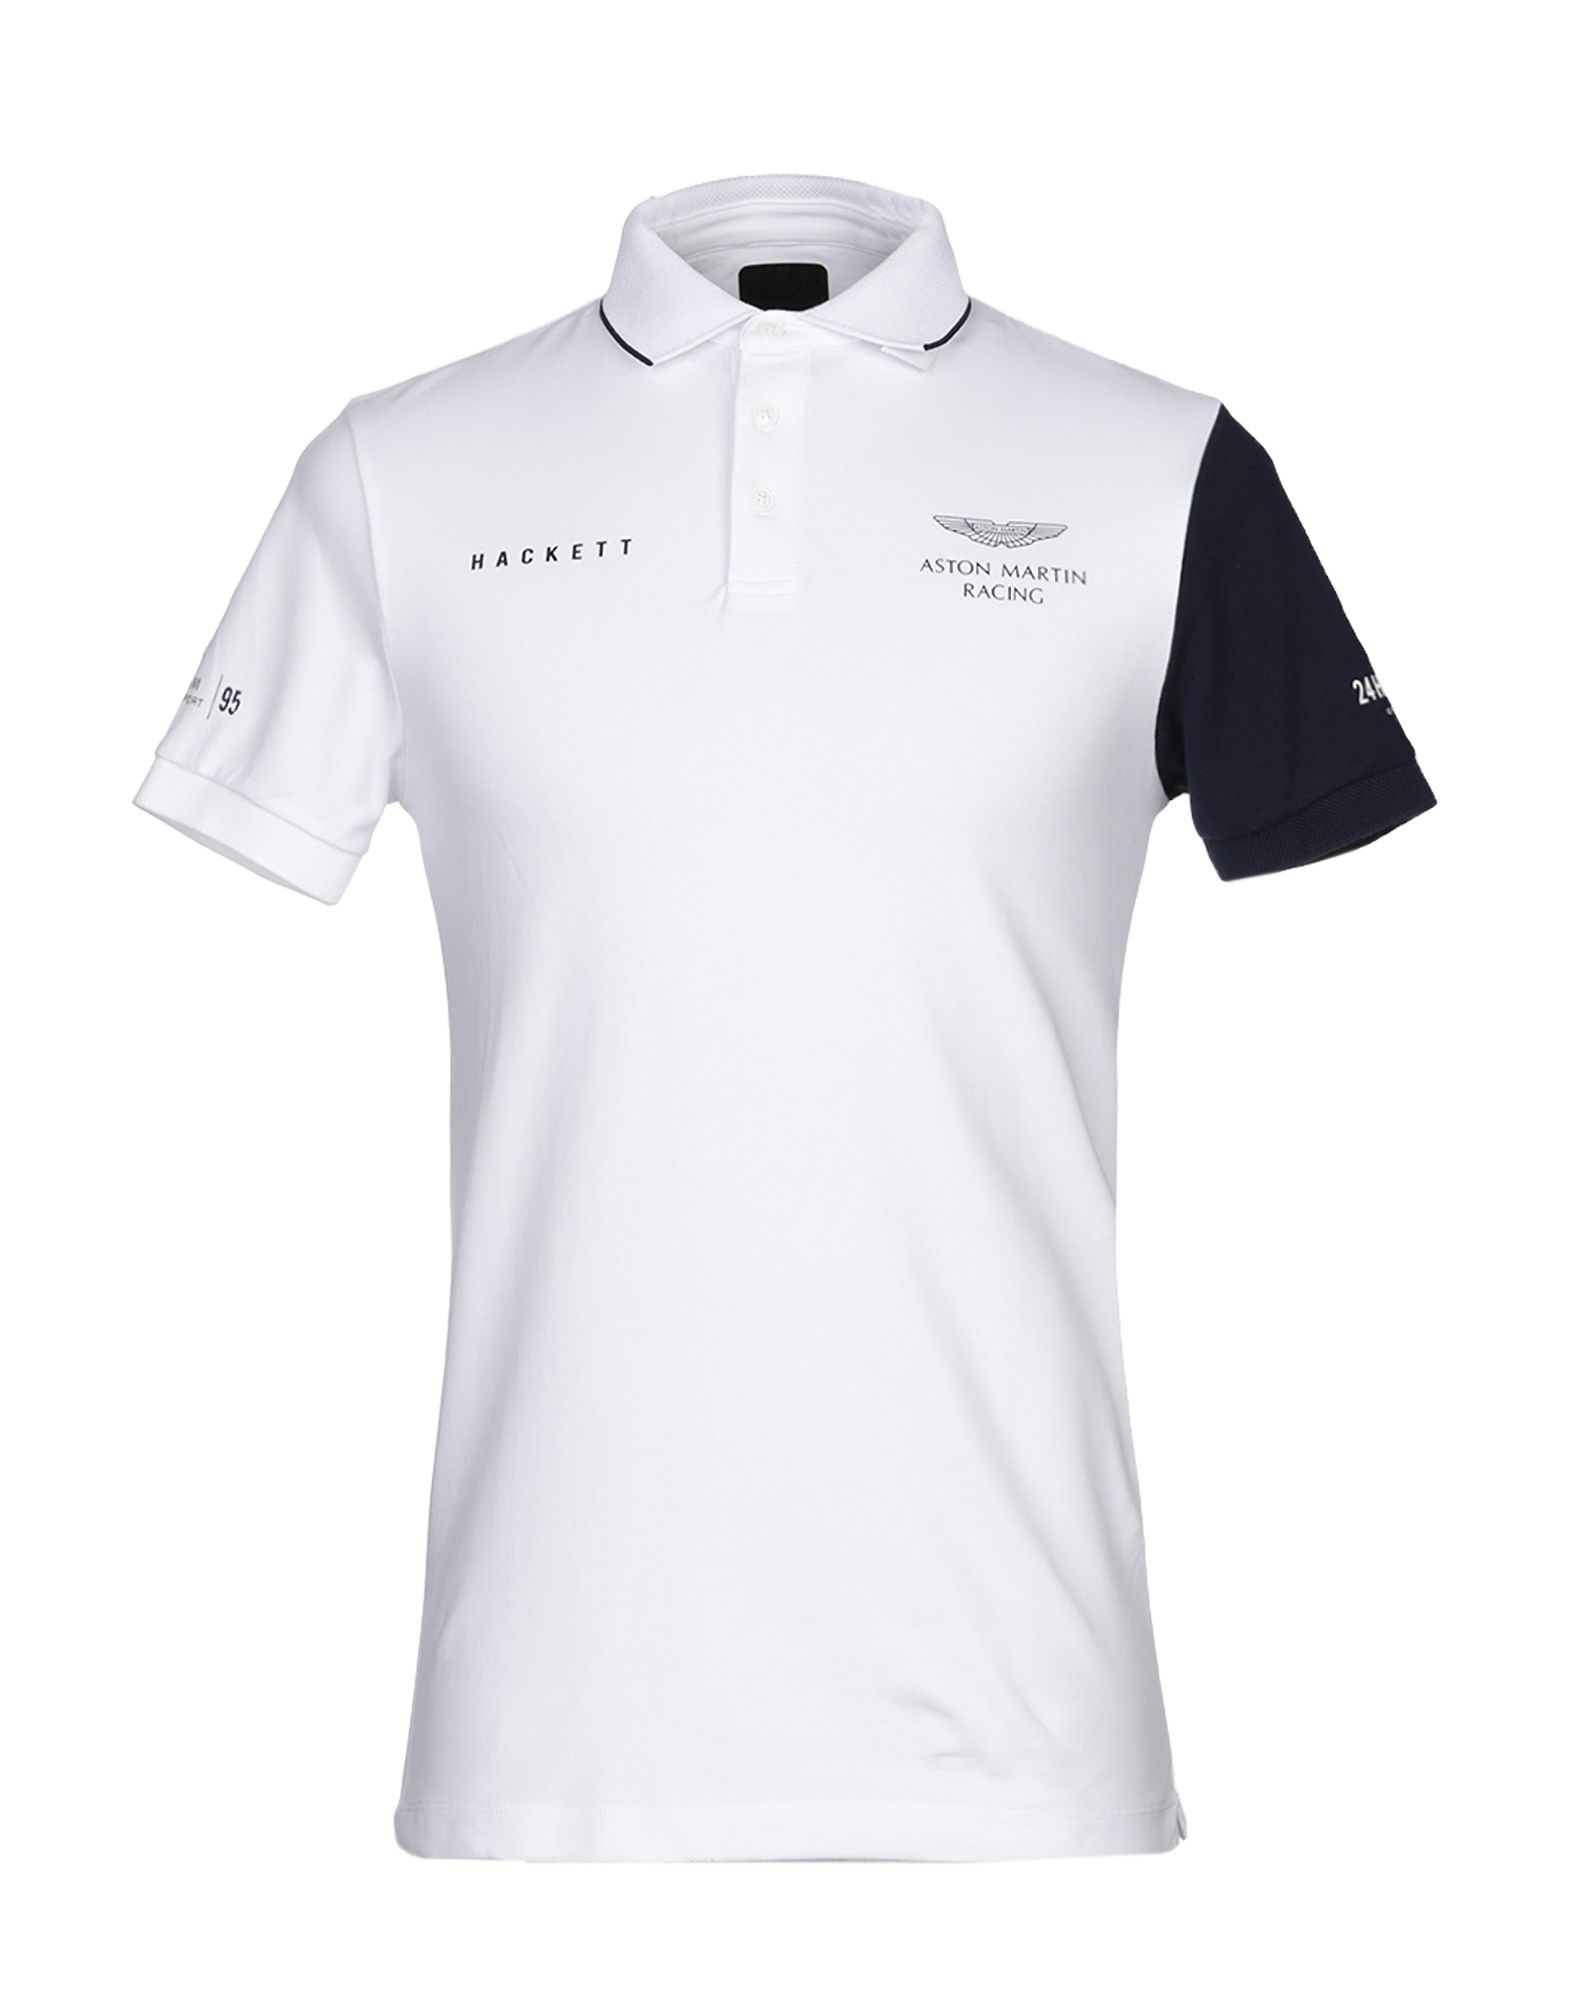 ASTON MARTIN RACING by HACKETT Polo shirt - T-Shirts and Tops | YOOX.COM | aston martin shirt hackett